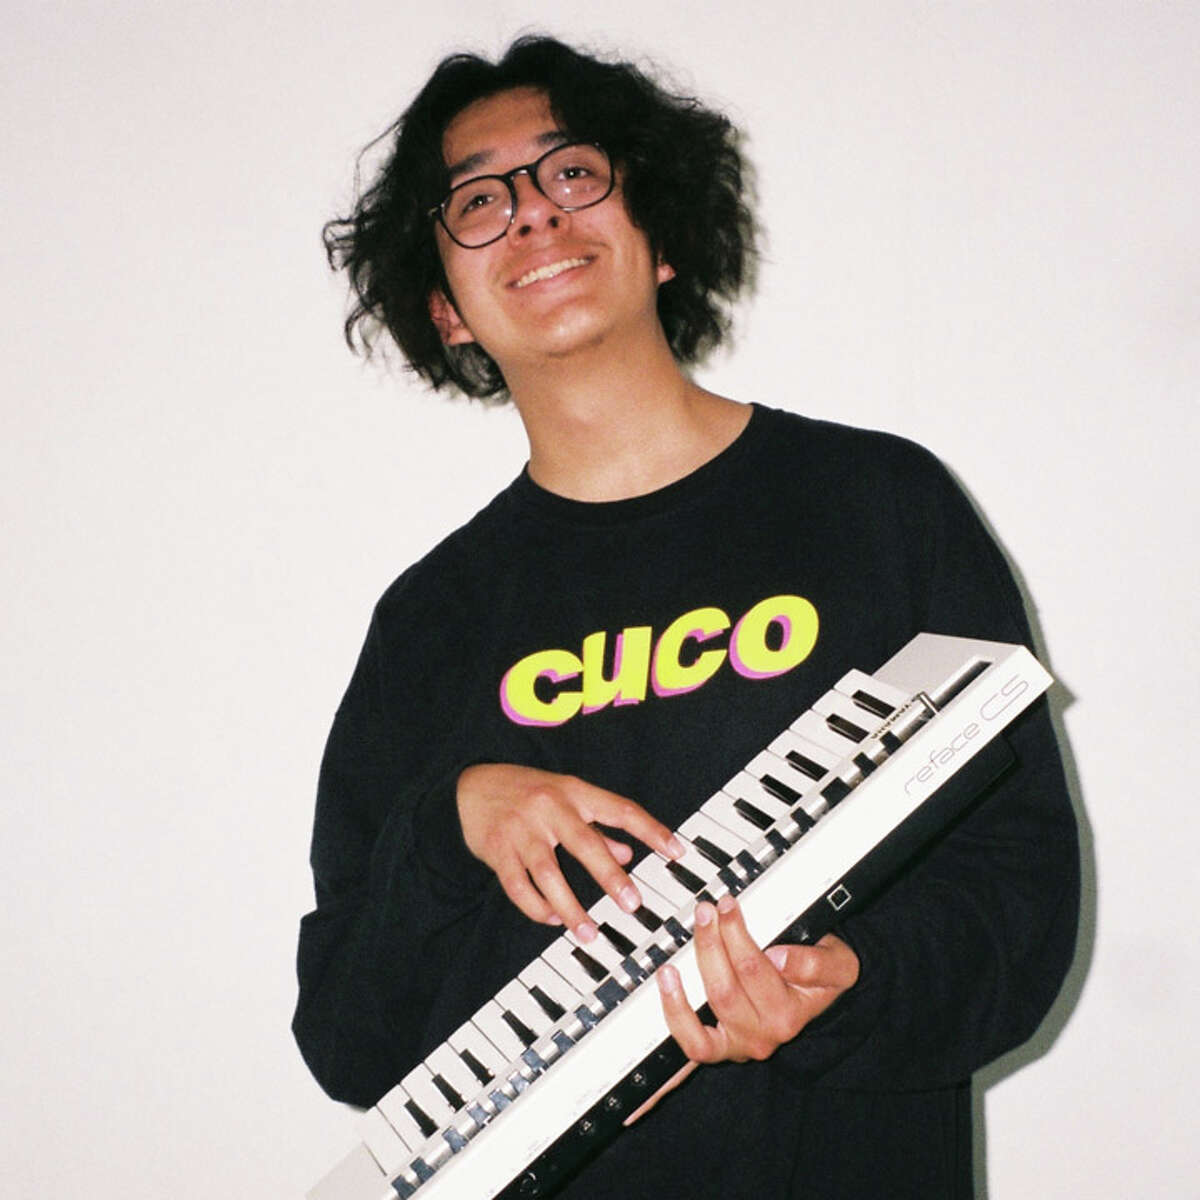 Like El Paso's Khalid, Los Angeles teenager Omar Banos has amassed a devoted following by singing honestly and openly about his feelings. Performing as Cuco, makes reverby, keyboard drenched ballads with lyrics quietly sung and spoken-sung in English and Spanish. Titles like